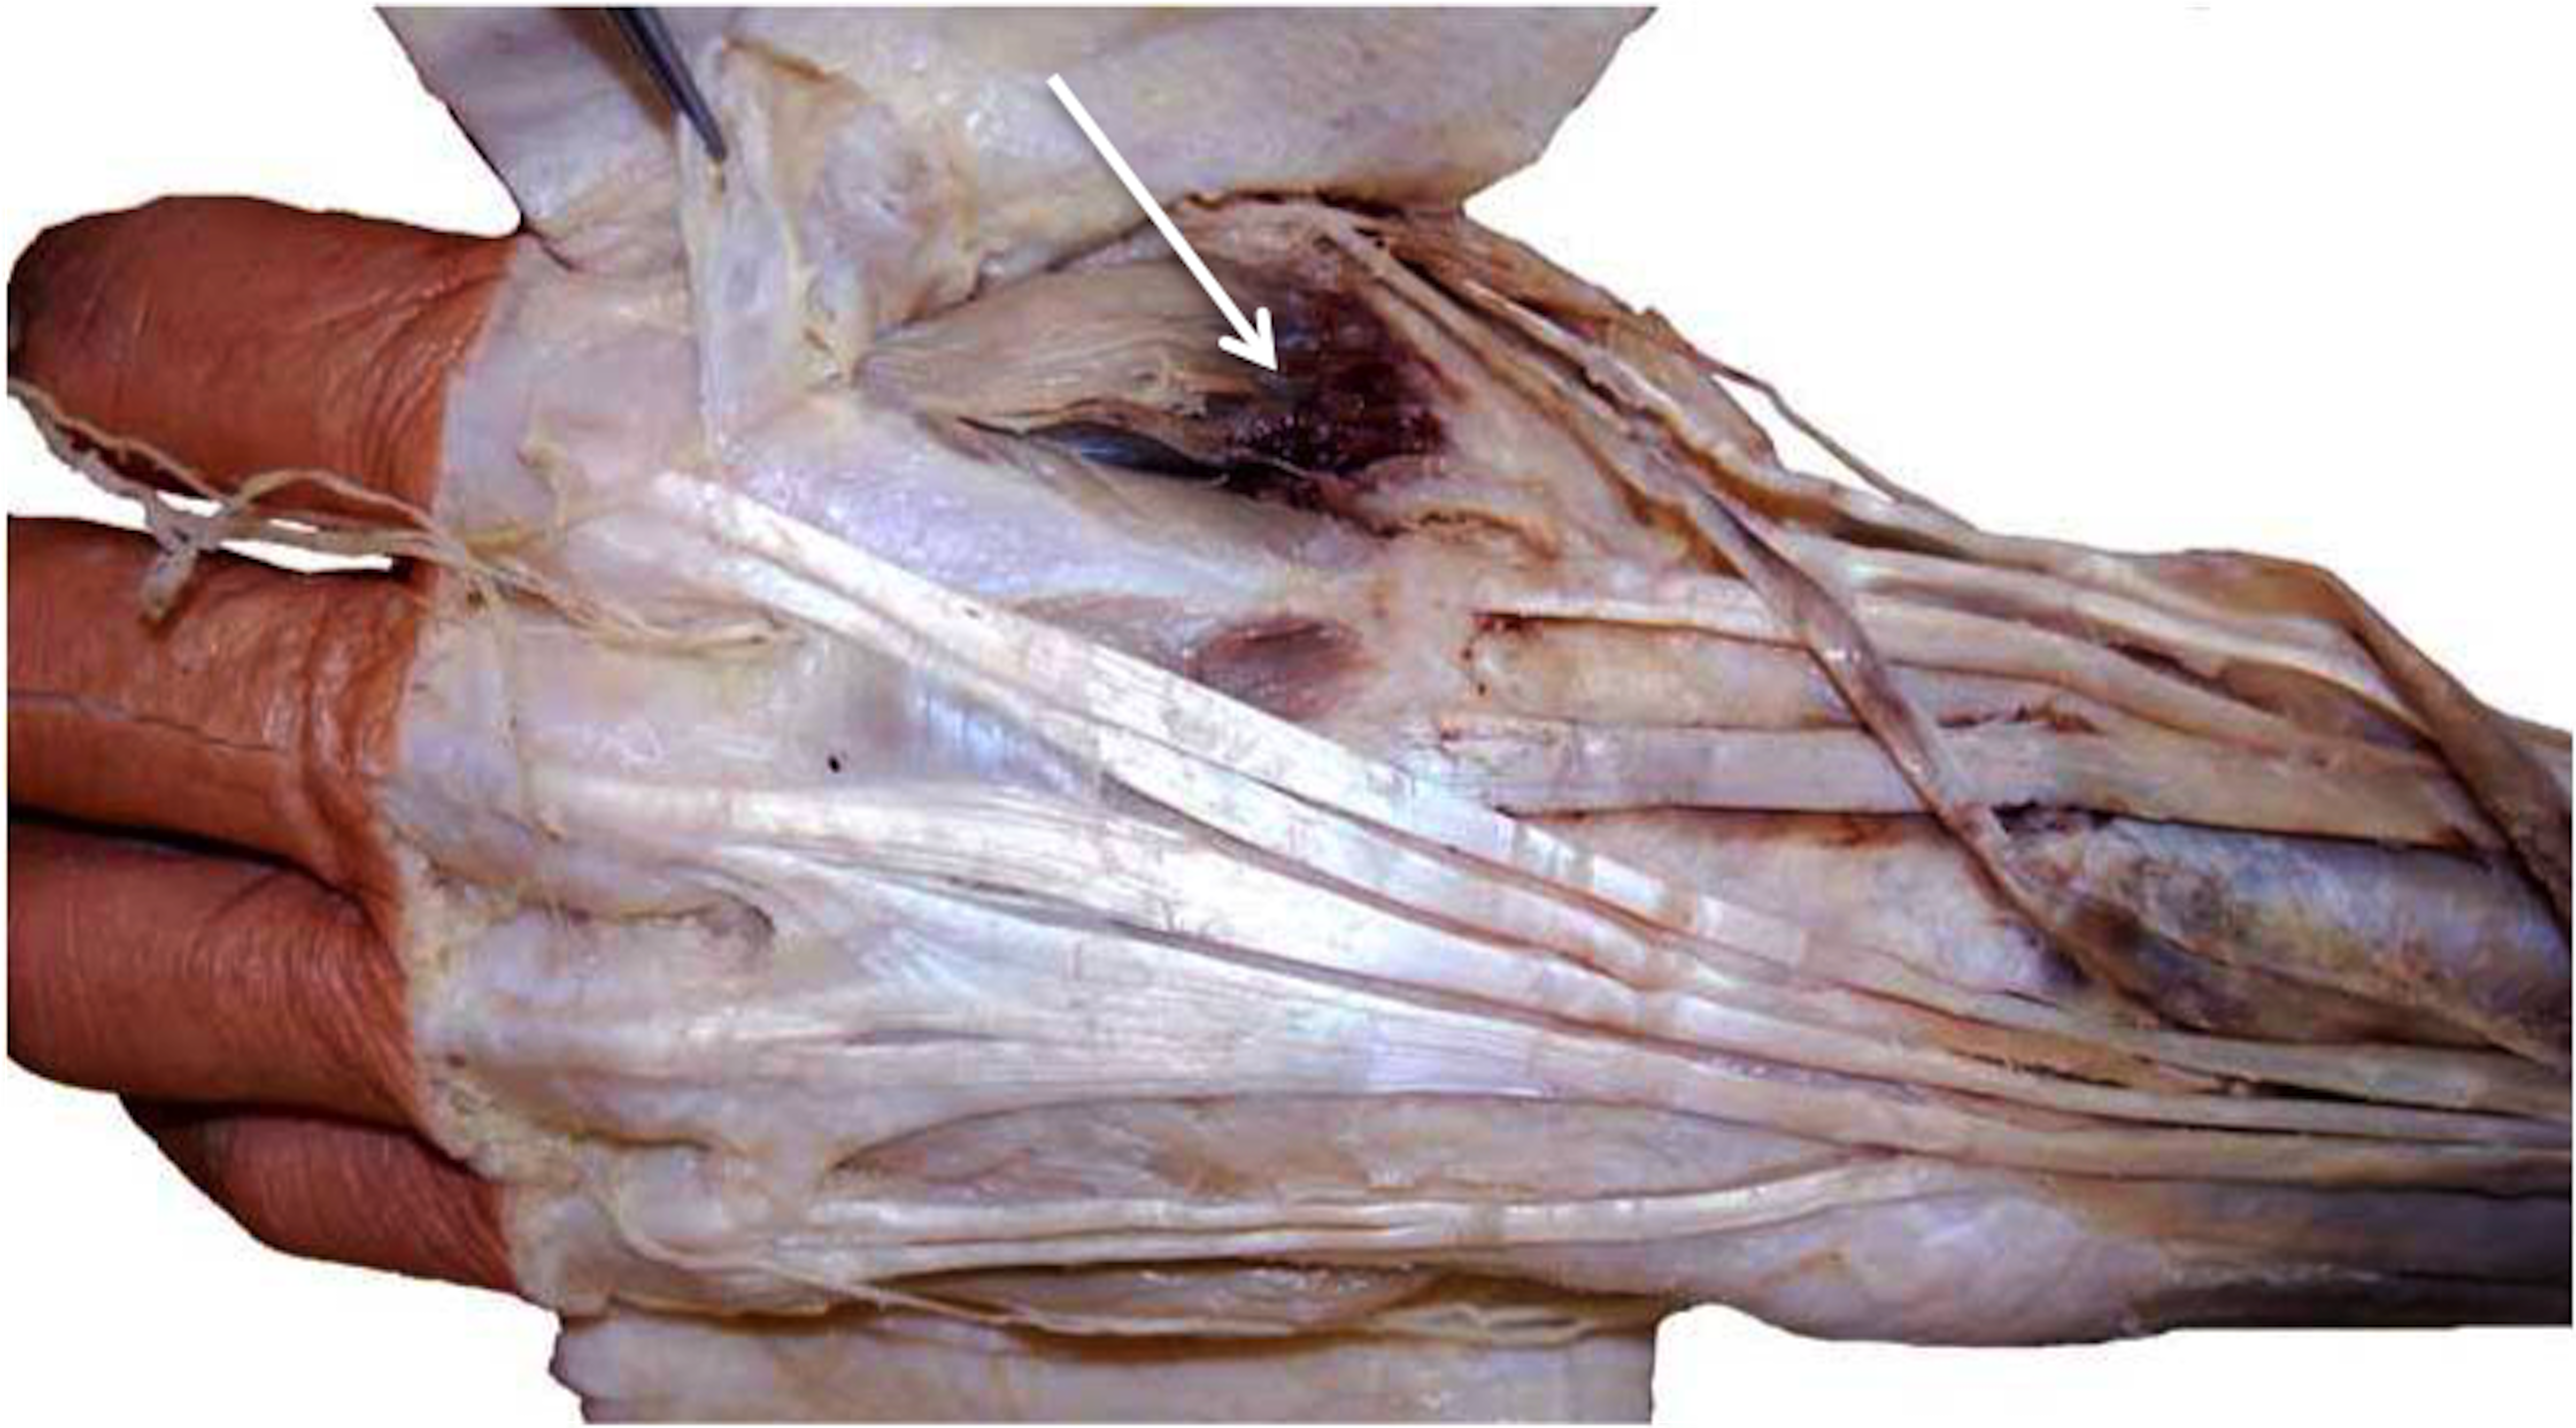 Cureus | Median Nerve Palsies due to Injections: A Review